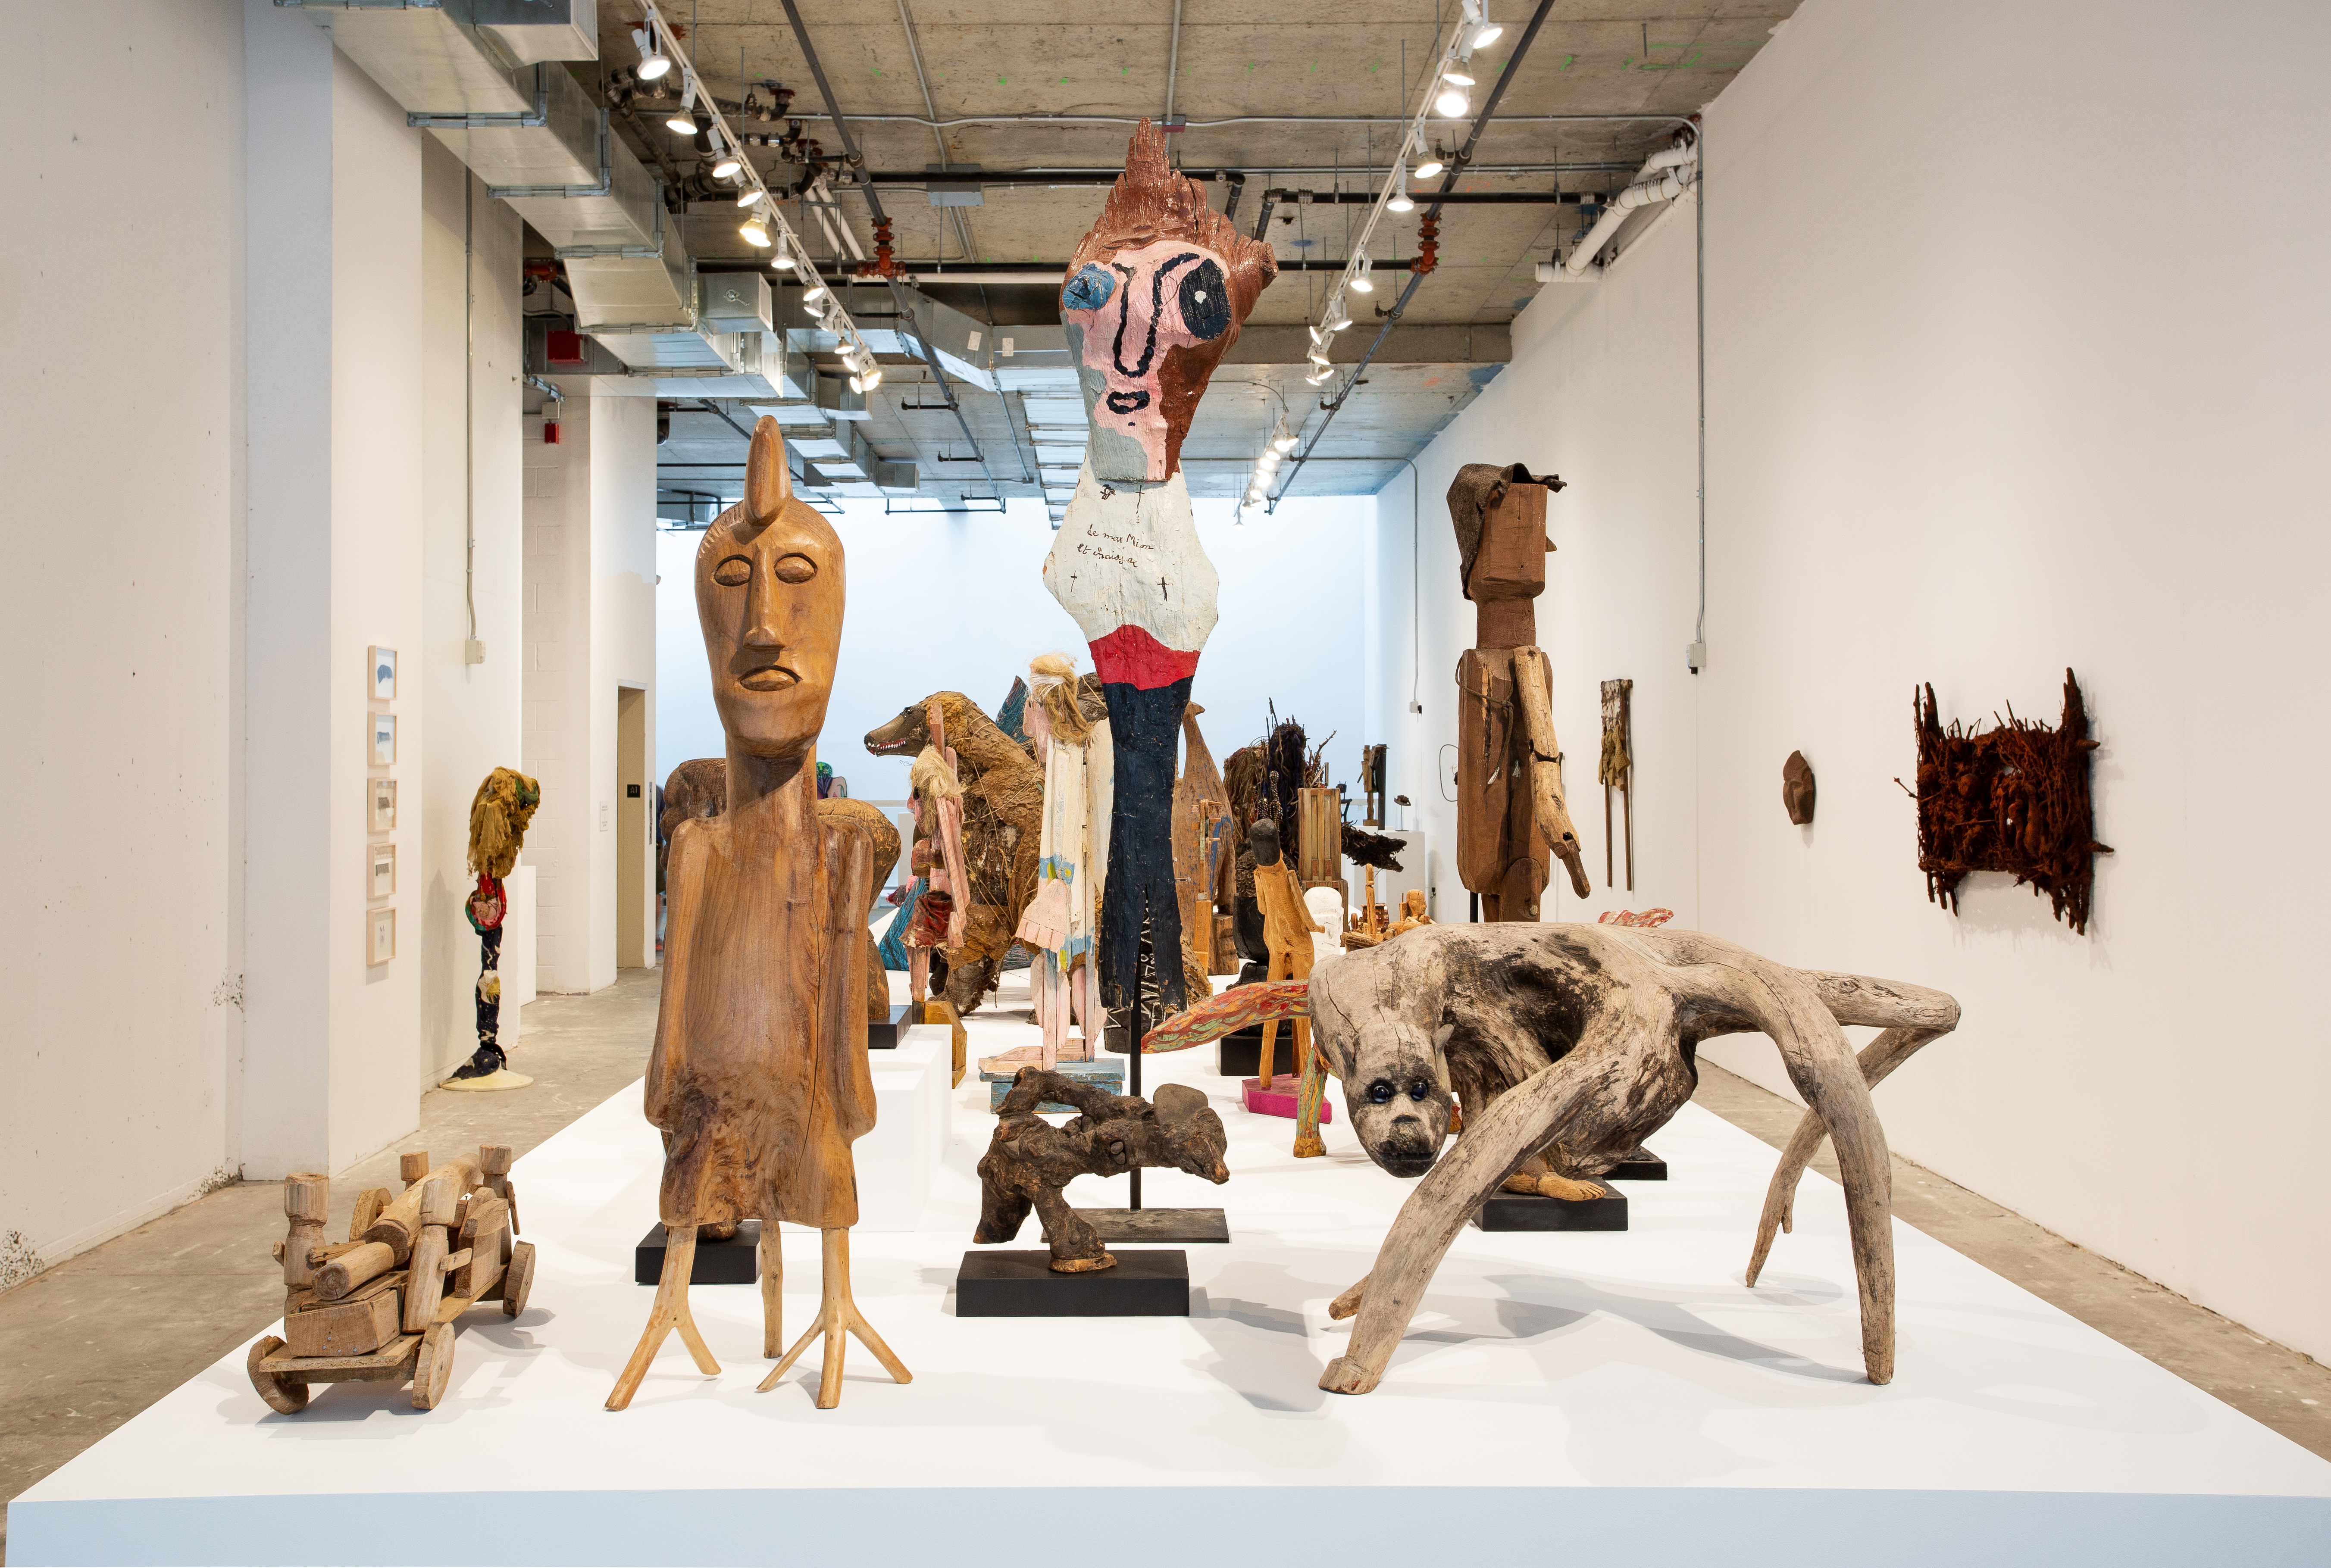 """Installation view of """"Super-Rough."""" Organized by the Outsider Art Fair with guest curator Takashi Murakami. Photo Credit: Olya Vysotskaya. Courtesy of the Outsider Art Fair"""